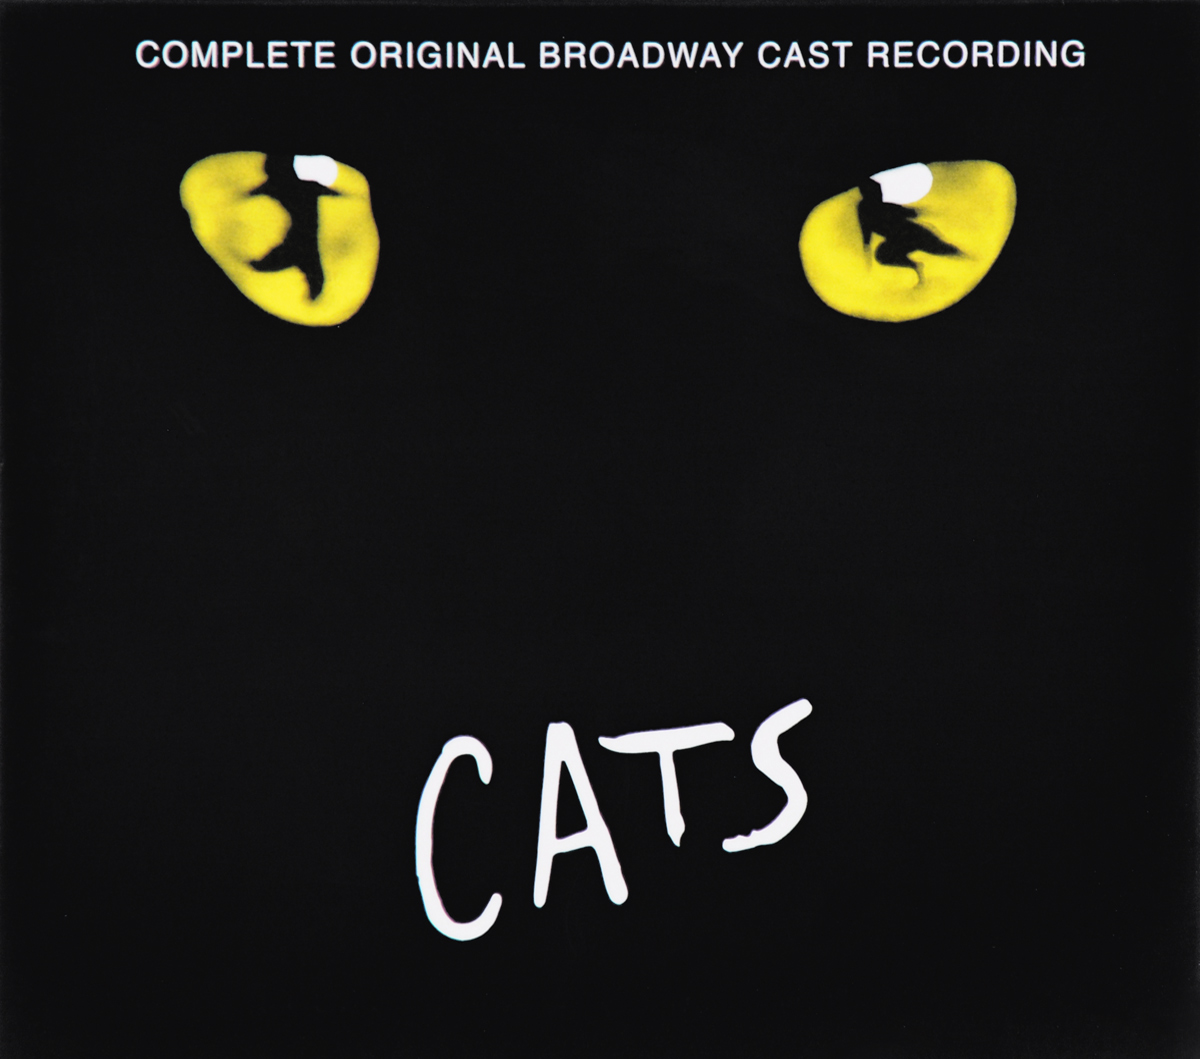 Original Broadway Cast Chorus Andrew Lloyd Webber. Cats. Complete Original Broadway Cast Recording. Deluxe Edition (2 CD) signed gfriend autographed original group photo 6 inches freeshipping 062017 c version